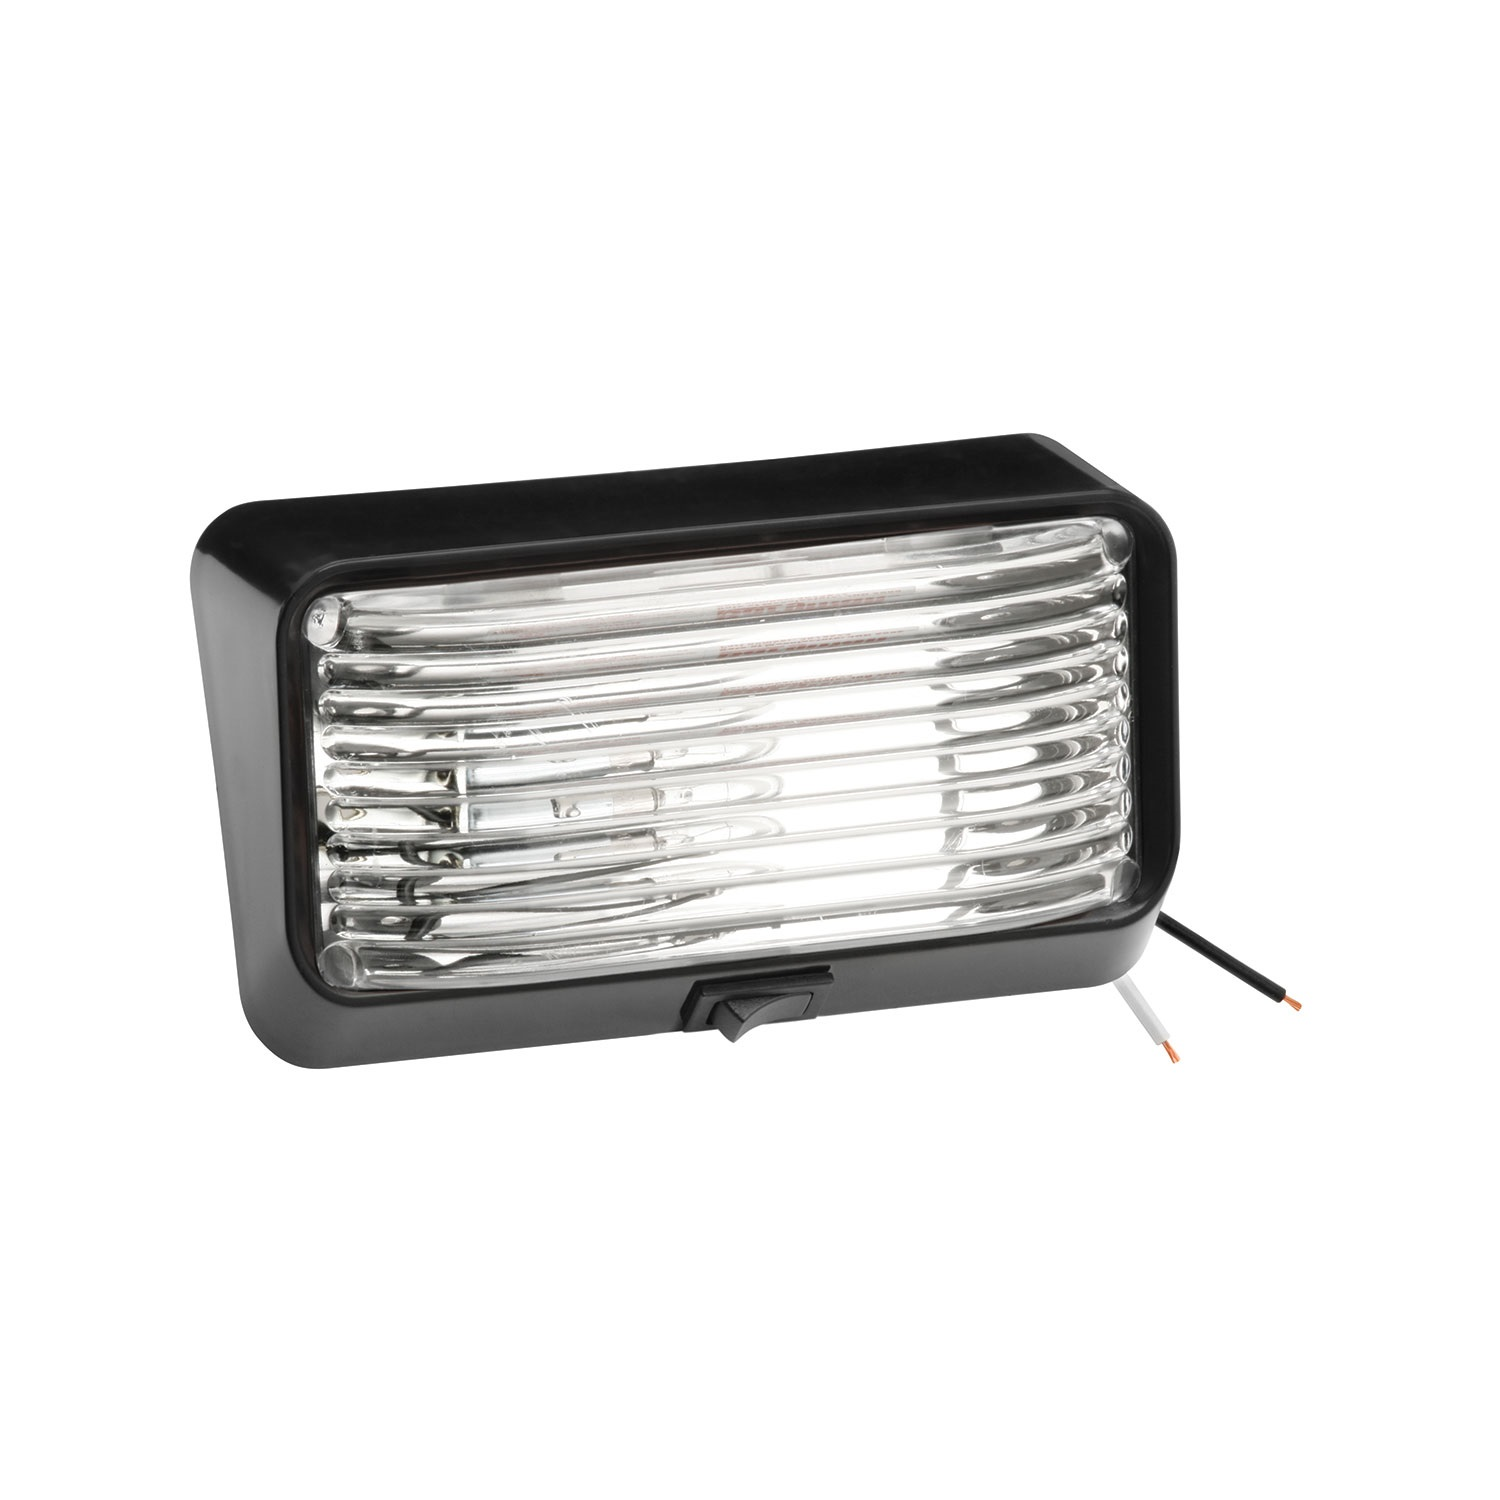 Bargman 3078524 Porch Light by Bargman